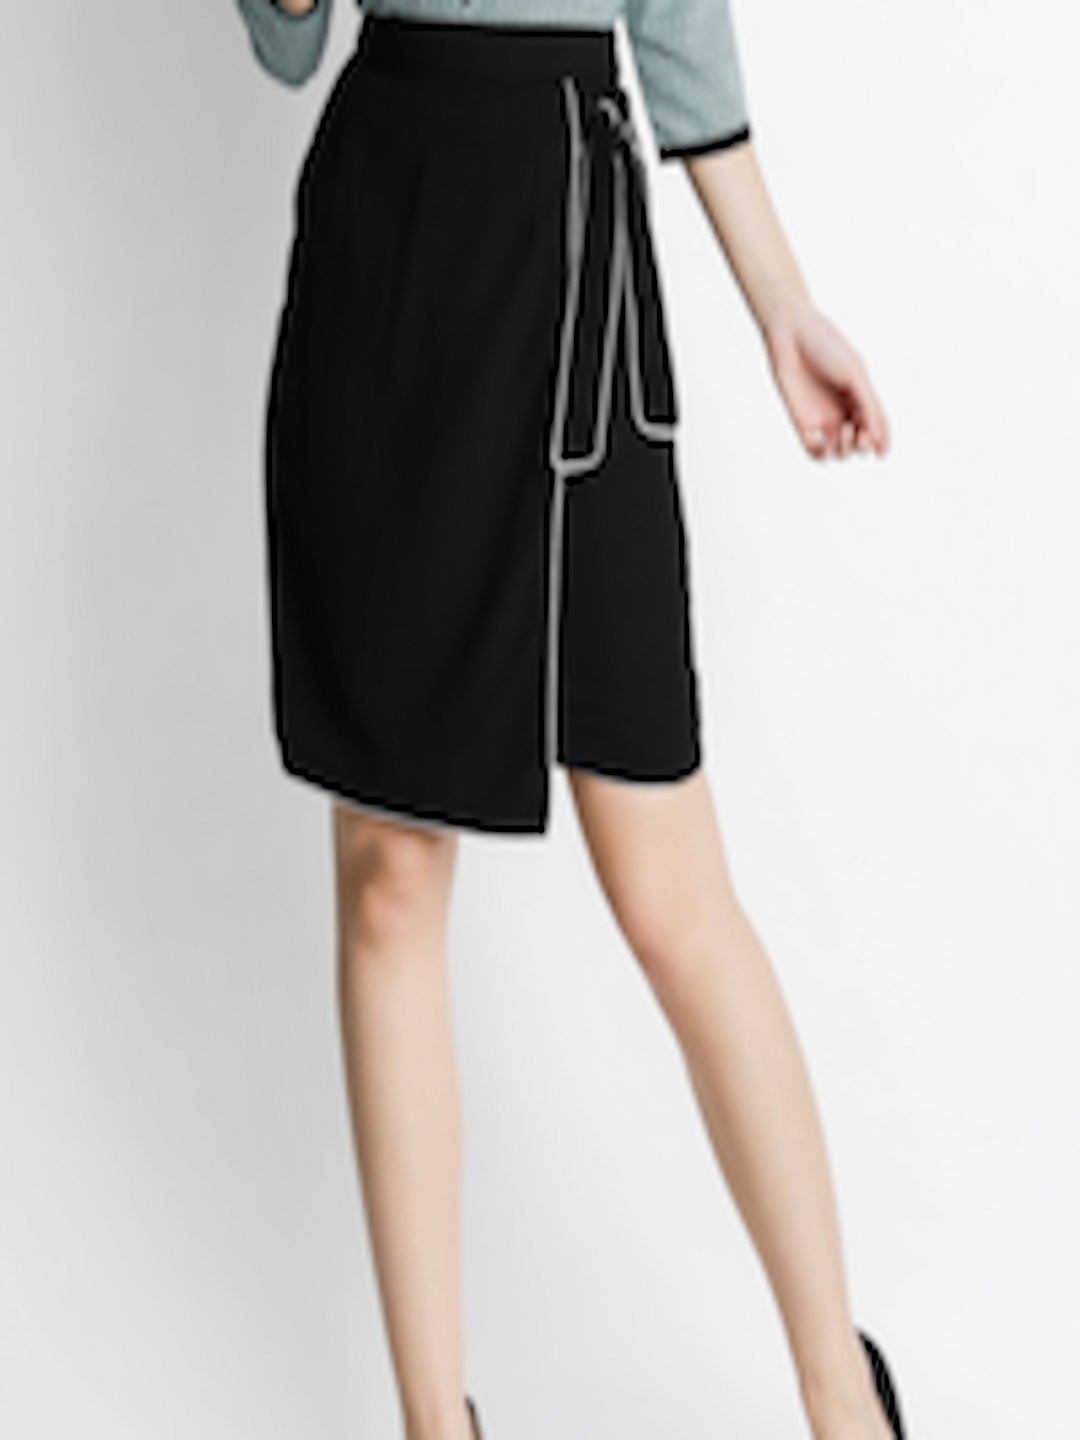 b8c1948184c3 Buy Annabelle By Pantaloons Black Solid Pencil Skirt - Skirts for Women  2518681 | Myntra